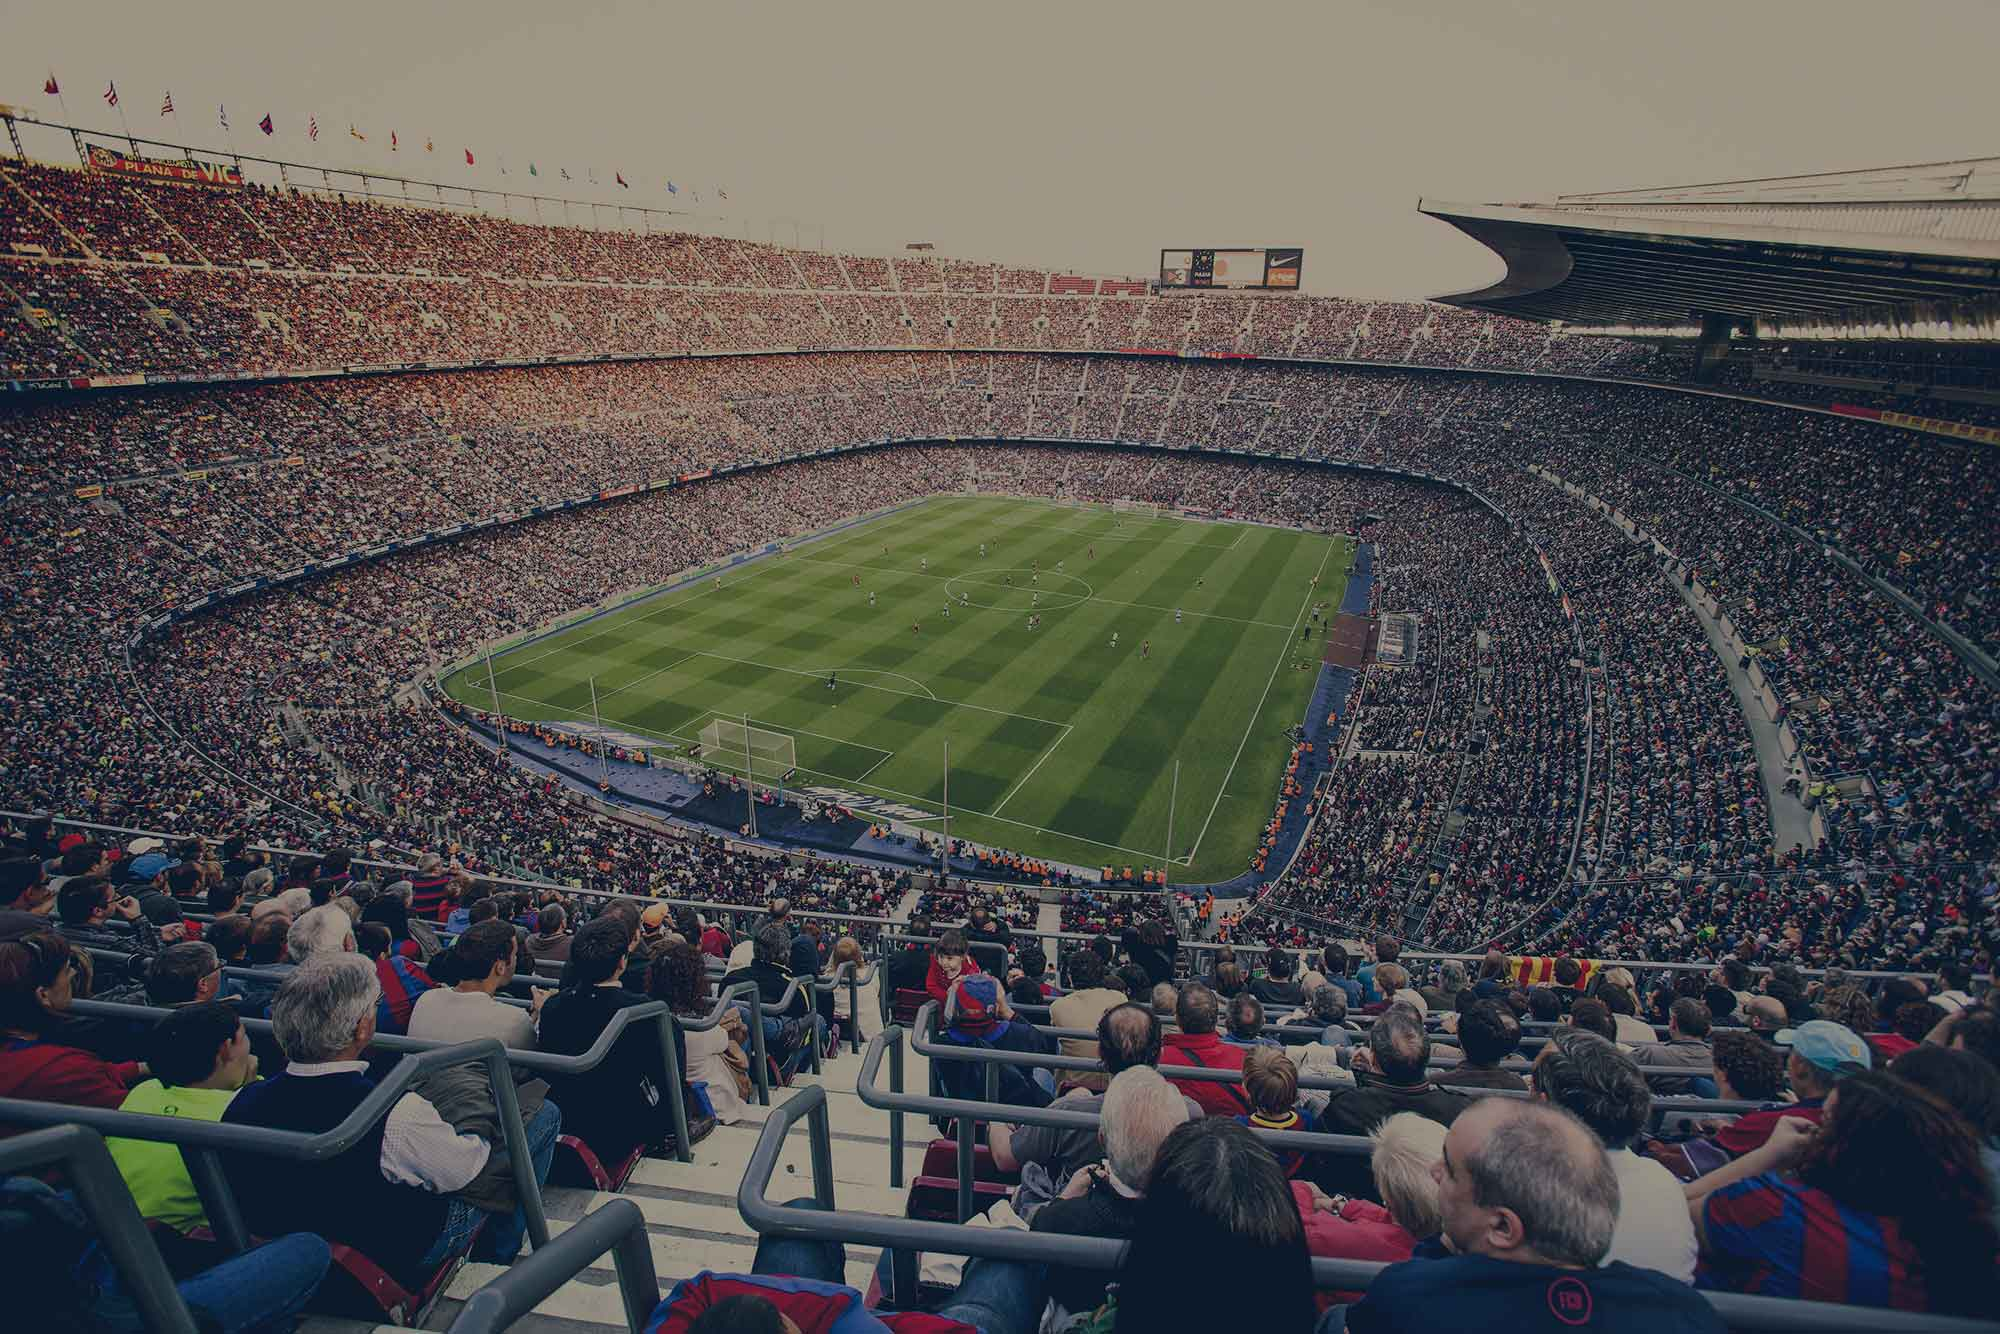 5 Smart Ways You Can Use Event Wi-Fi to Capitalize on the Fan Experience